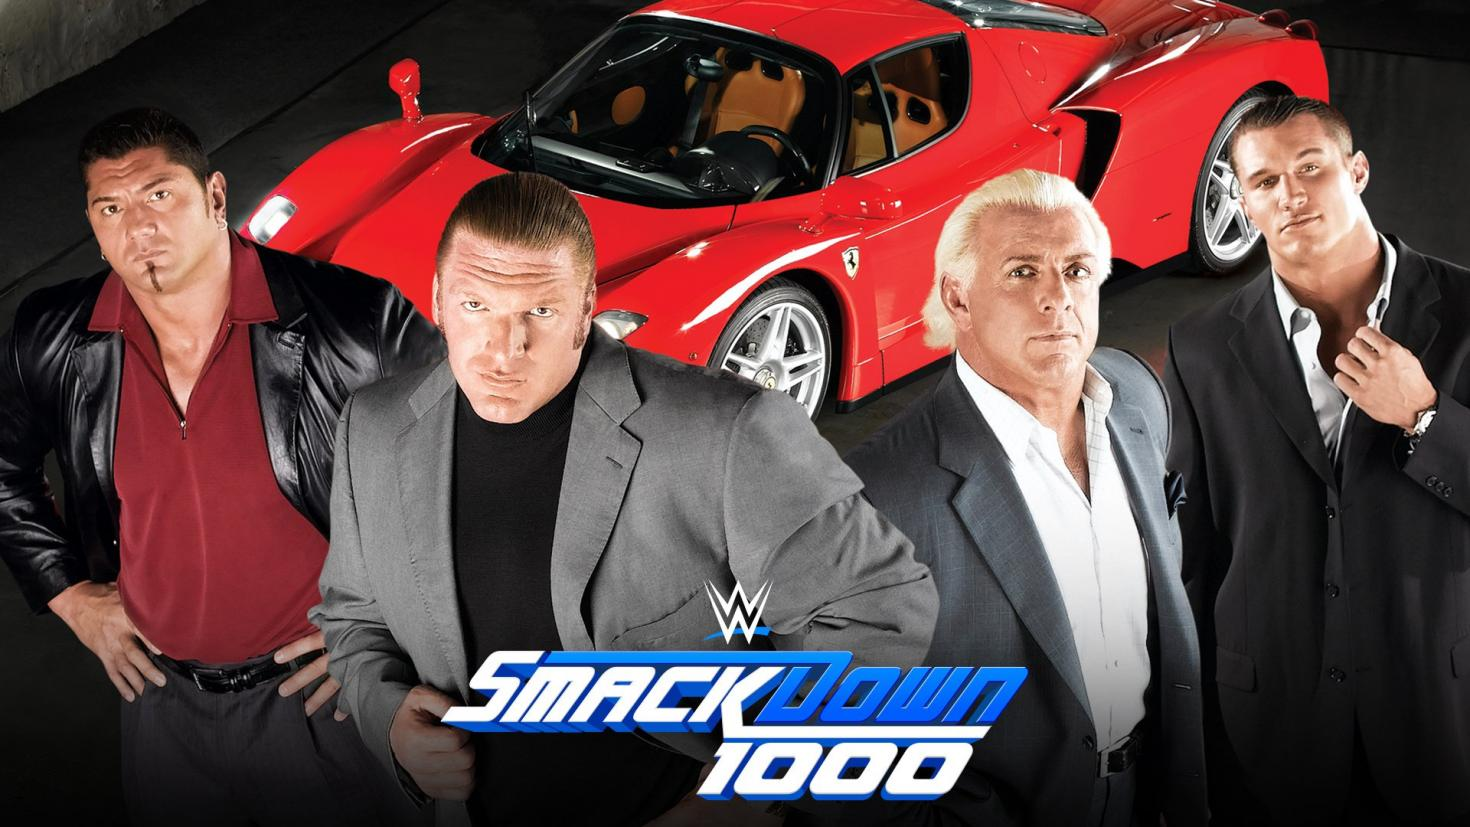 Evolution is reuniting at WWE SmackDown 1000